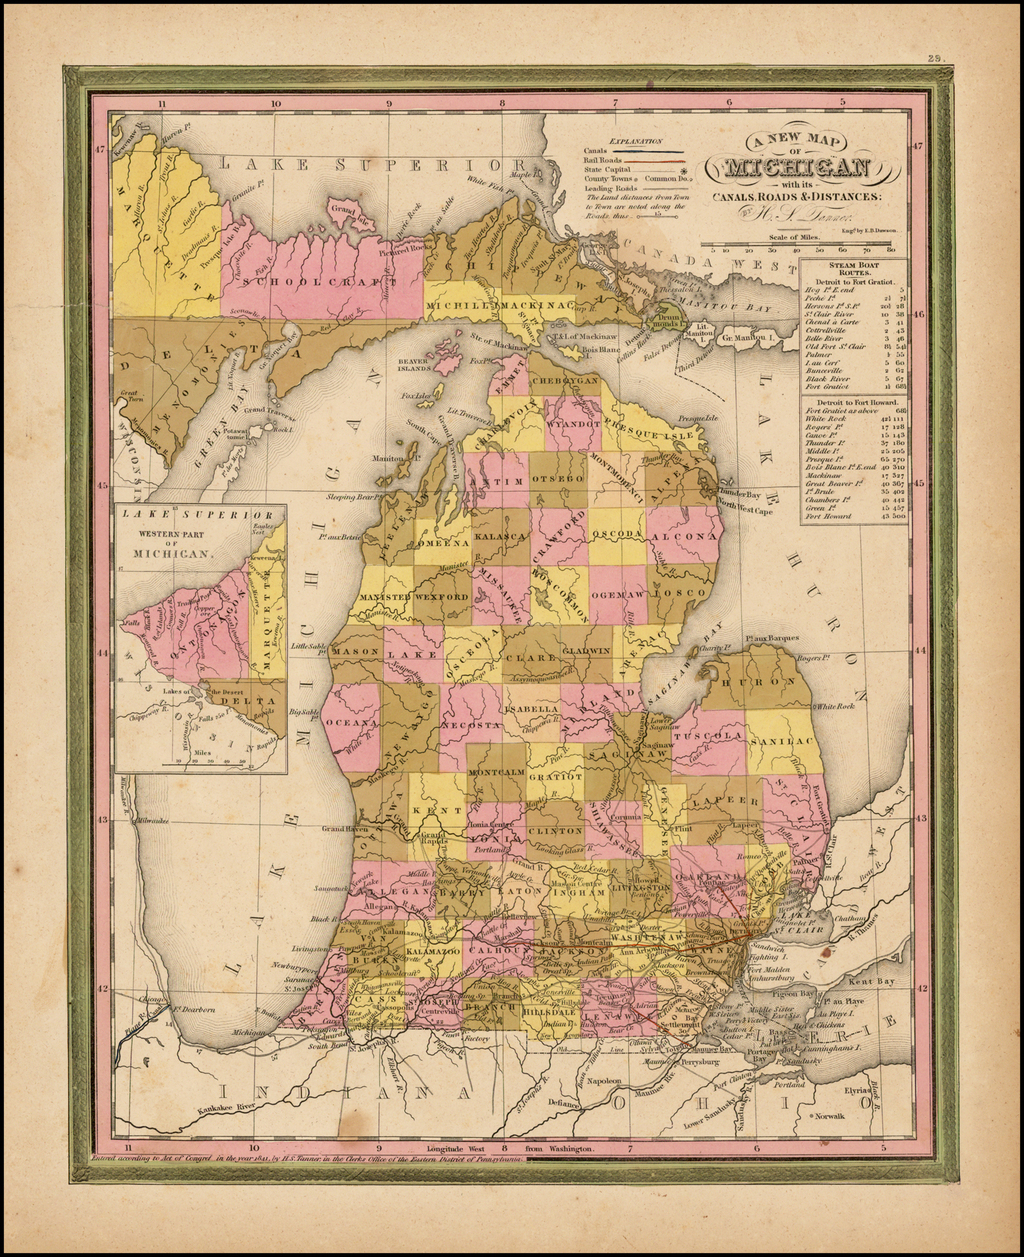 A New Map of Michigan with its Canals, Roads & Distances by H.S. Tanner By Henry Schenk Tanner